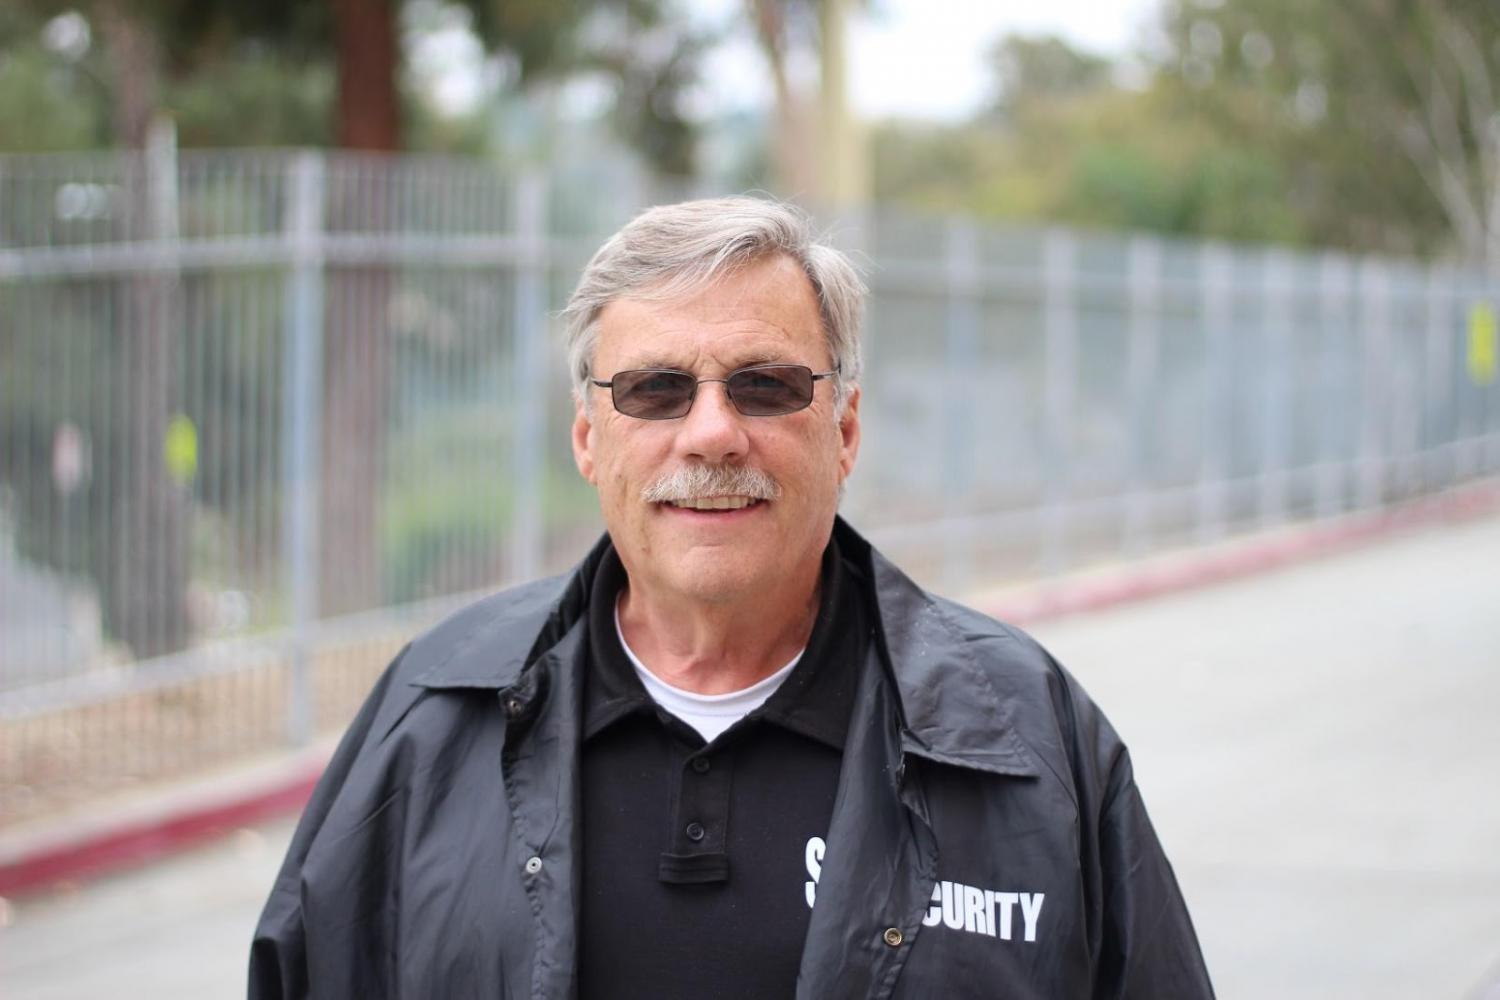 Security+guard+Gary+Warner+has+previously+worked+on+the+police+force+and+as+a+detective.+In+his+spare+time%2C+he+hikes+%2C+bikes+and+flies+planes.%0A